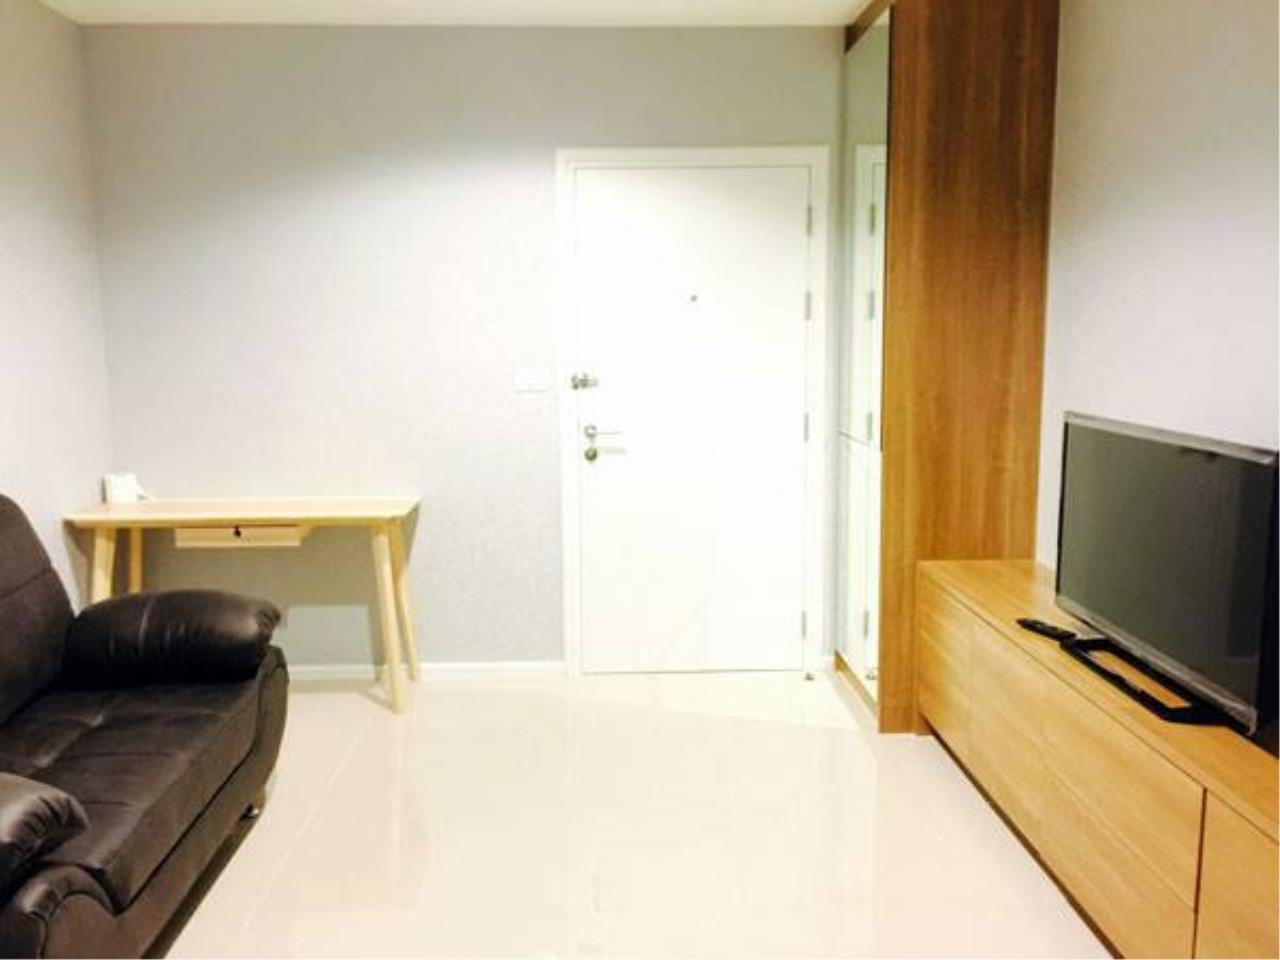 Quality Life Property Agency's S A L E !! ASPIRE SUKHUMVIT 48 1BR 38.5 Sq.m. Unblocked View 3